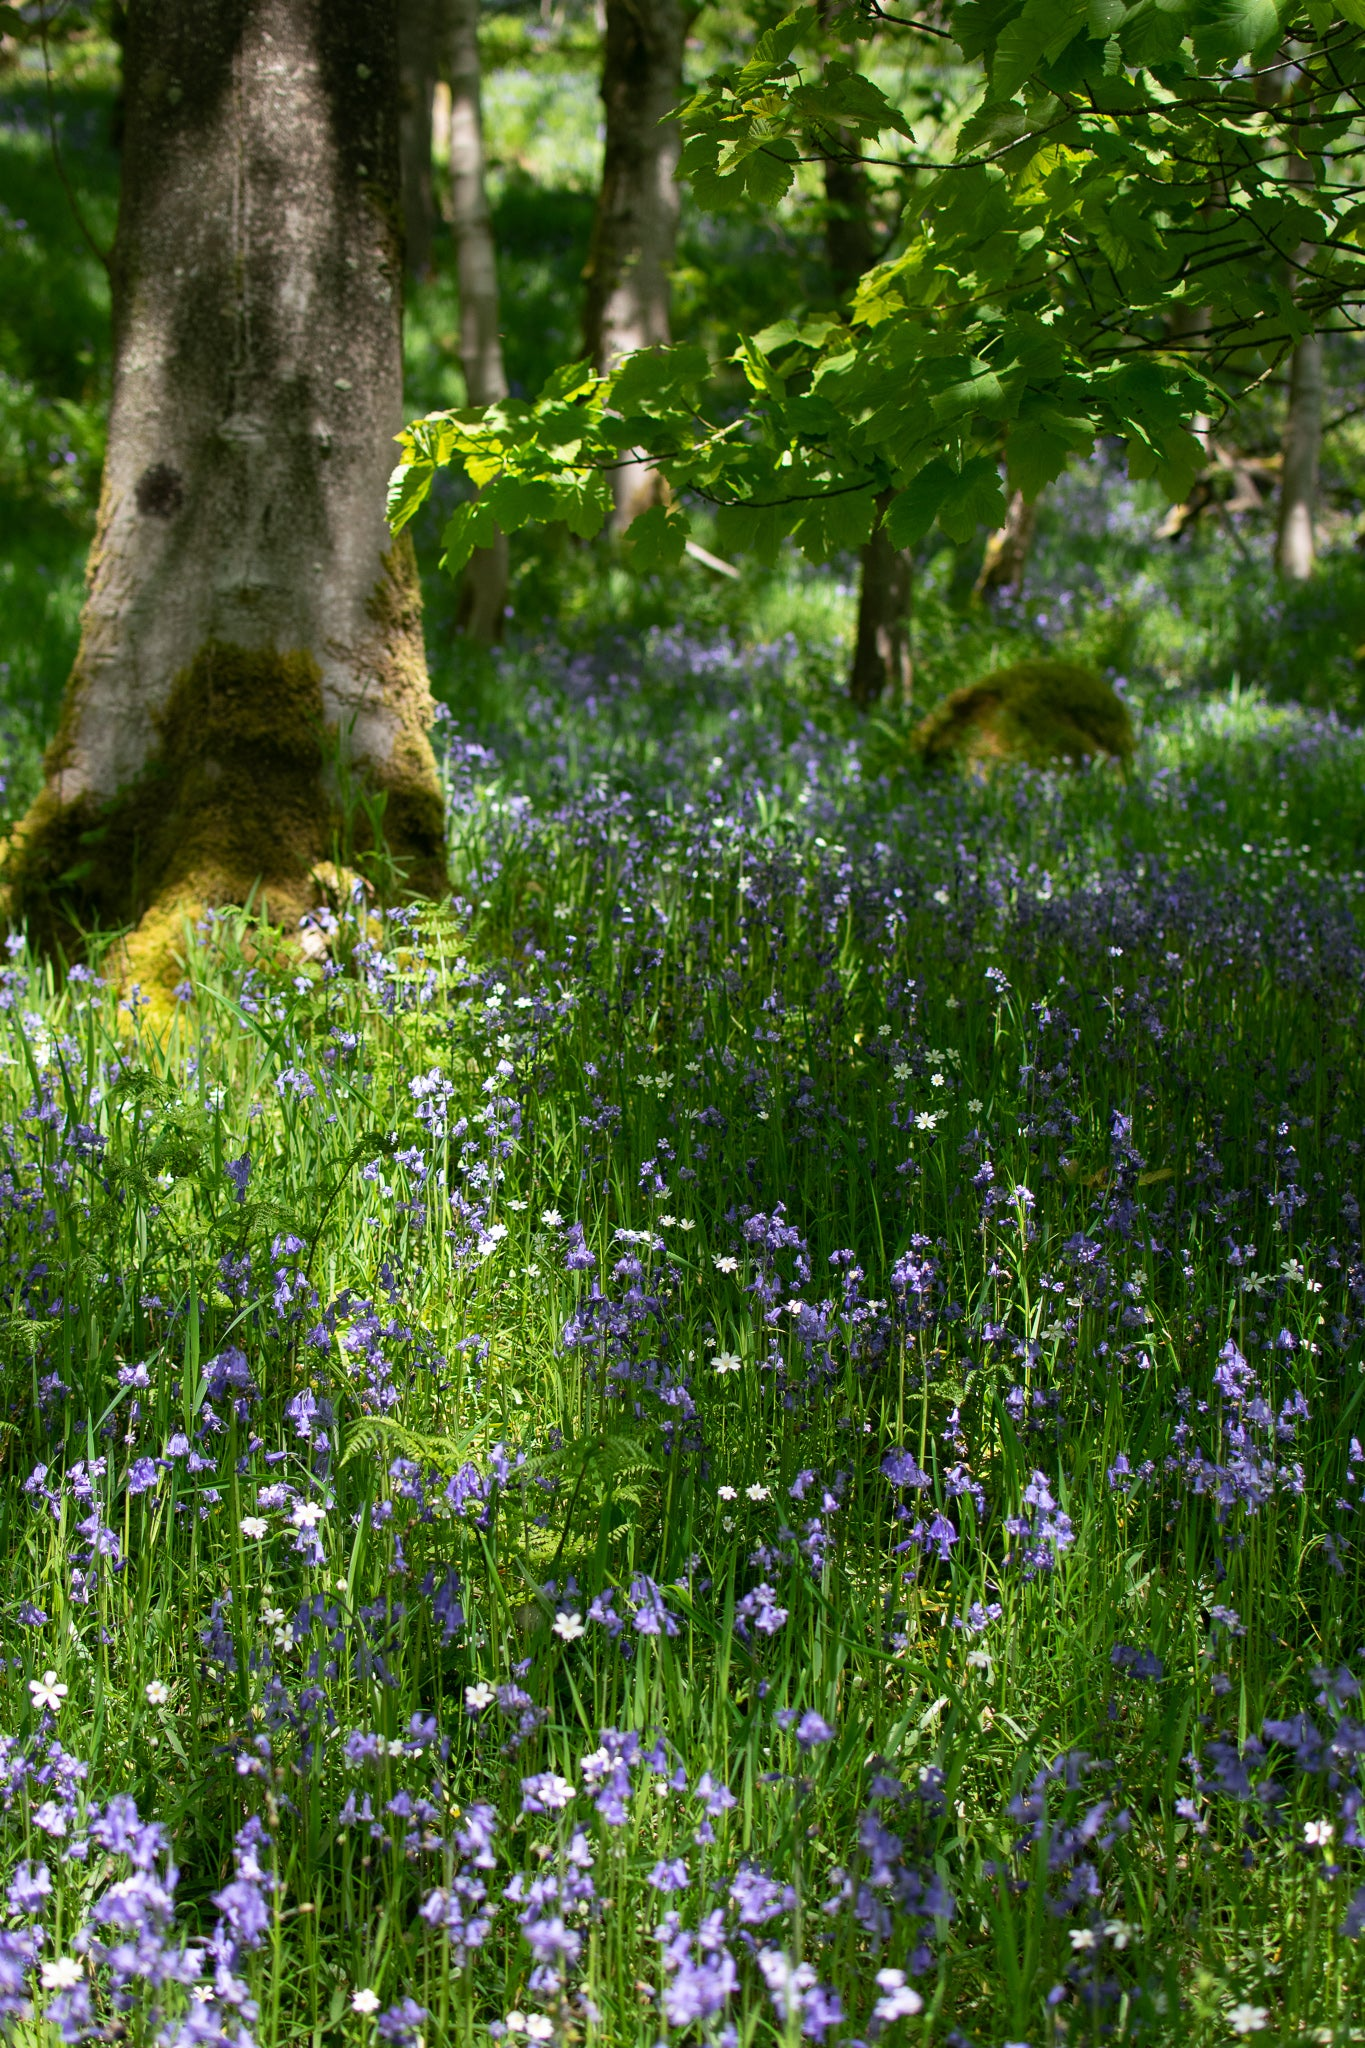 bluebells and stistchworts at Hardcastle Craggs